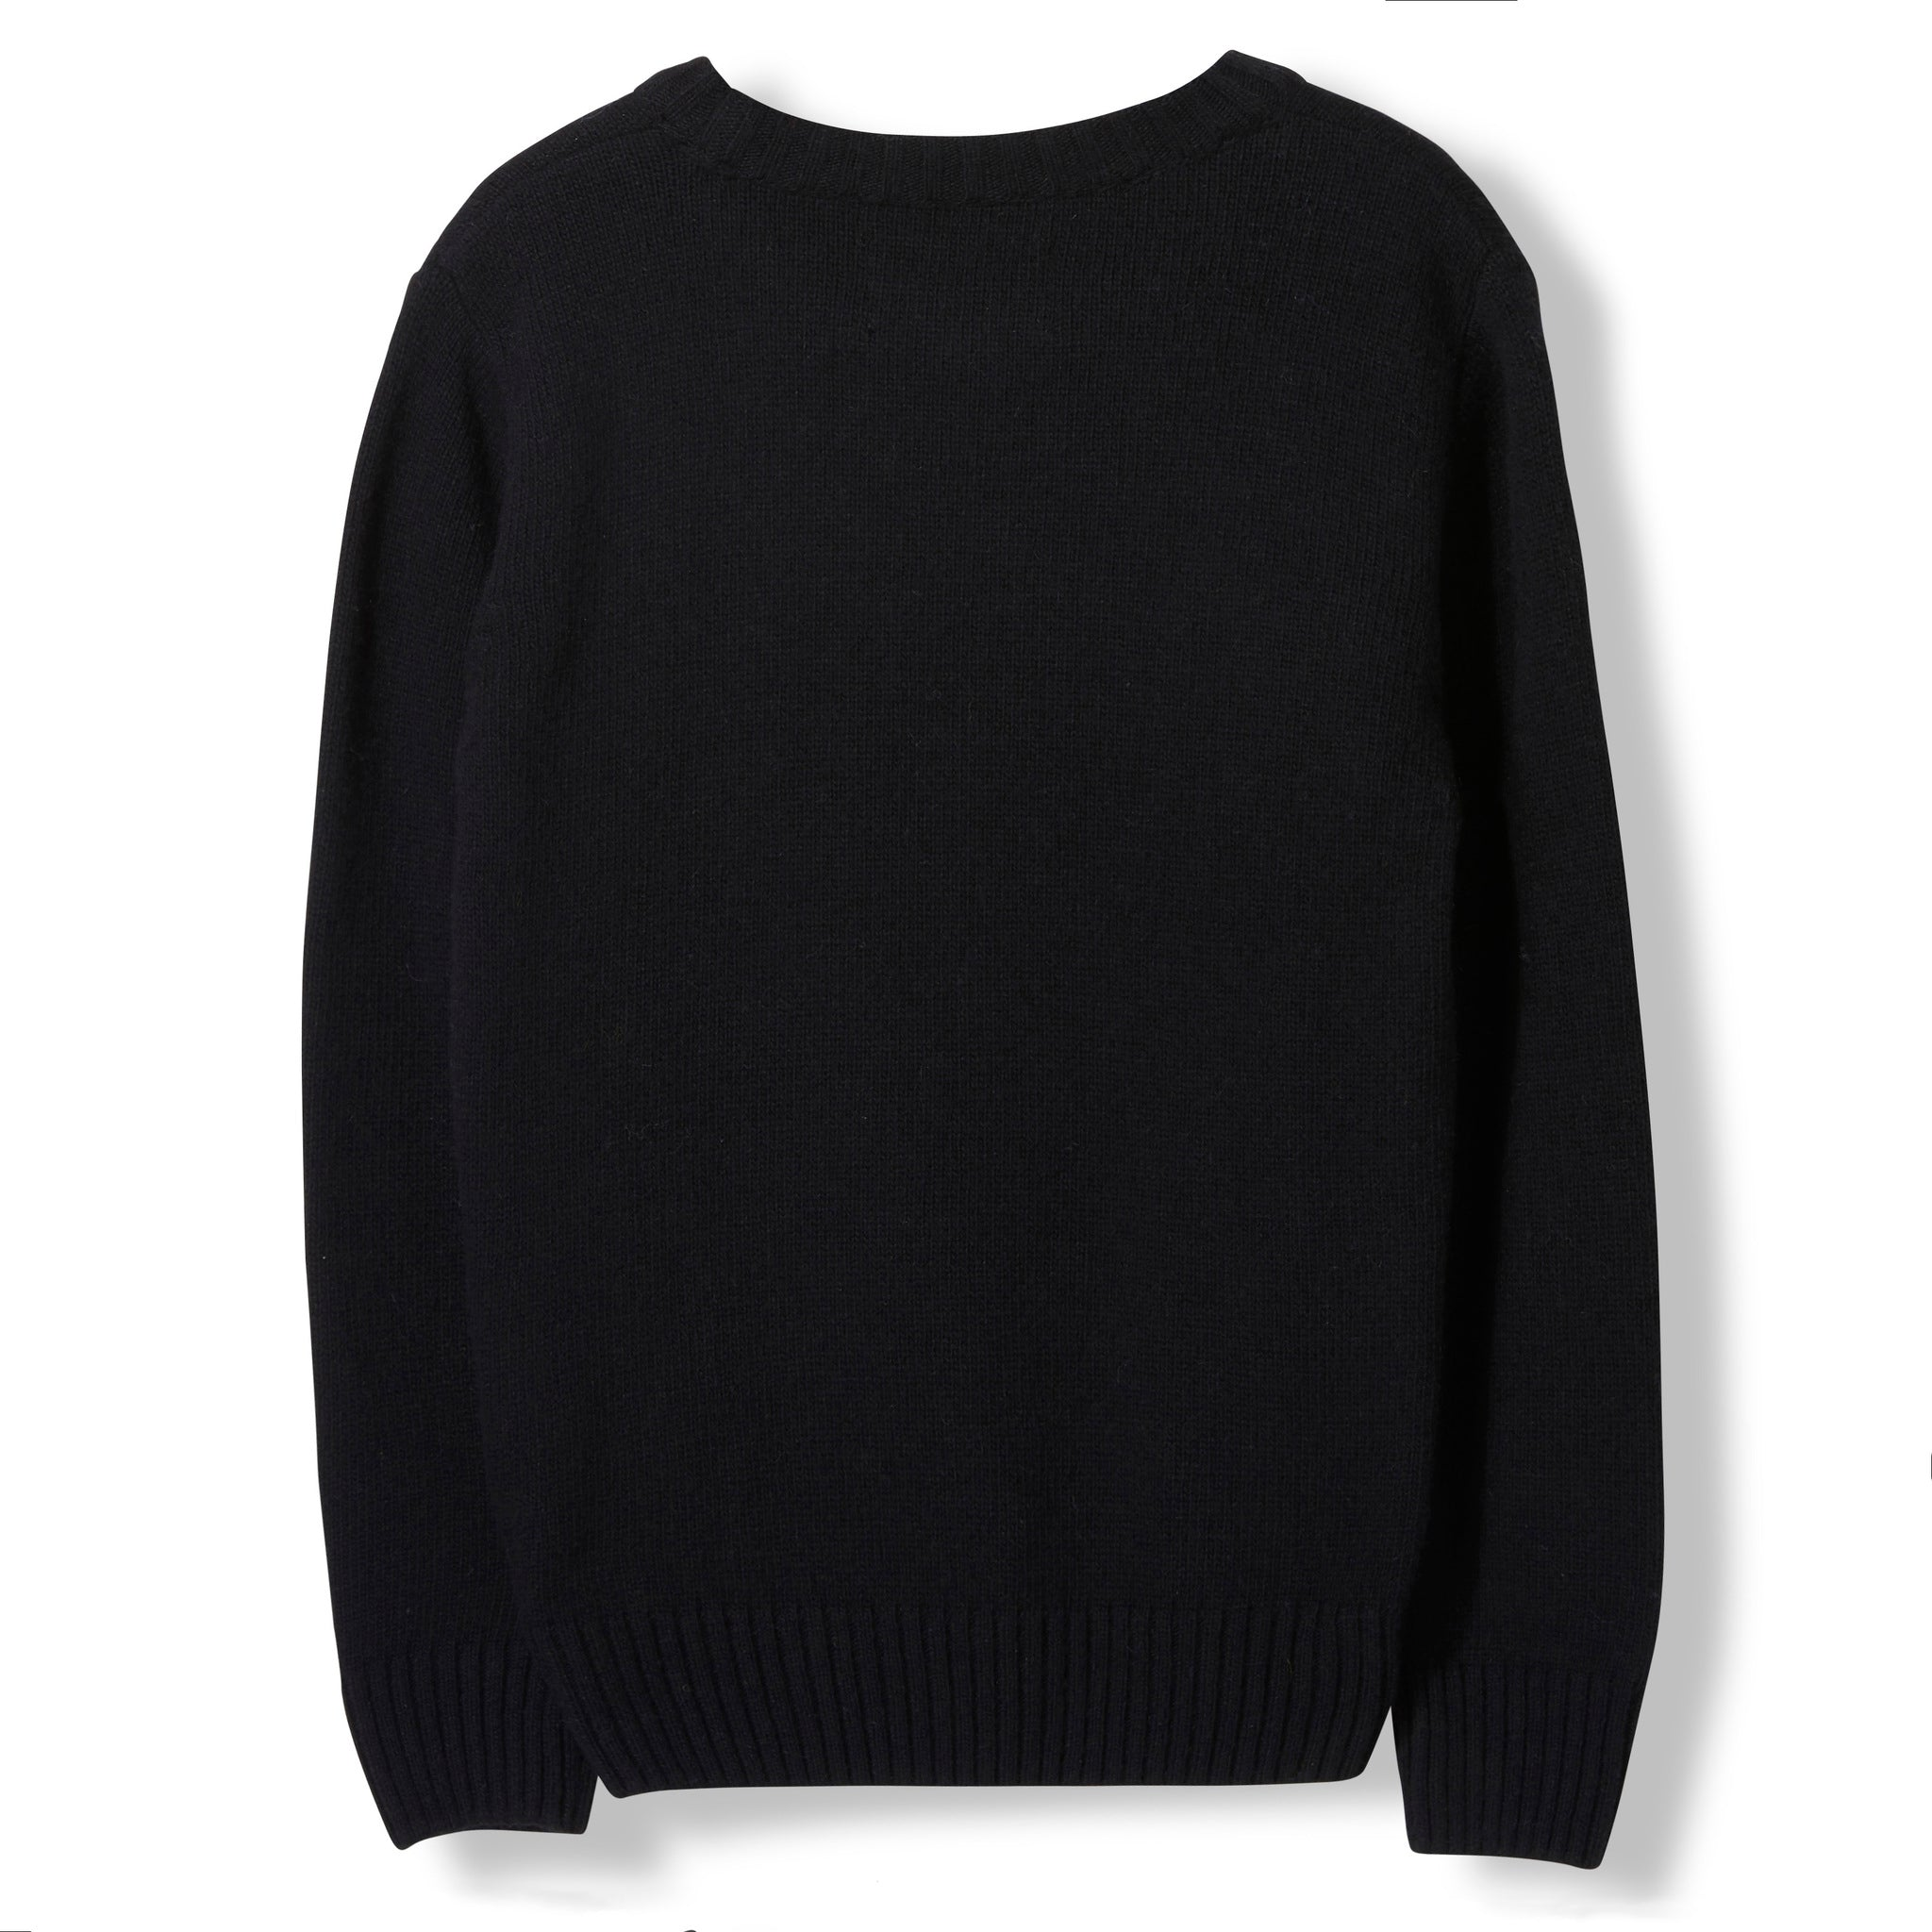 KRIS Black Ghost Skate -  Heavy Knitted Round Neck Jumper 2